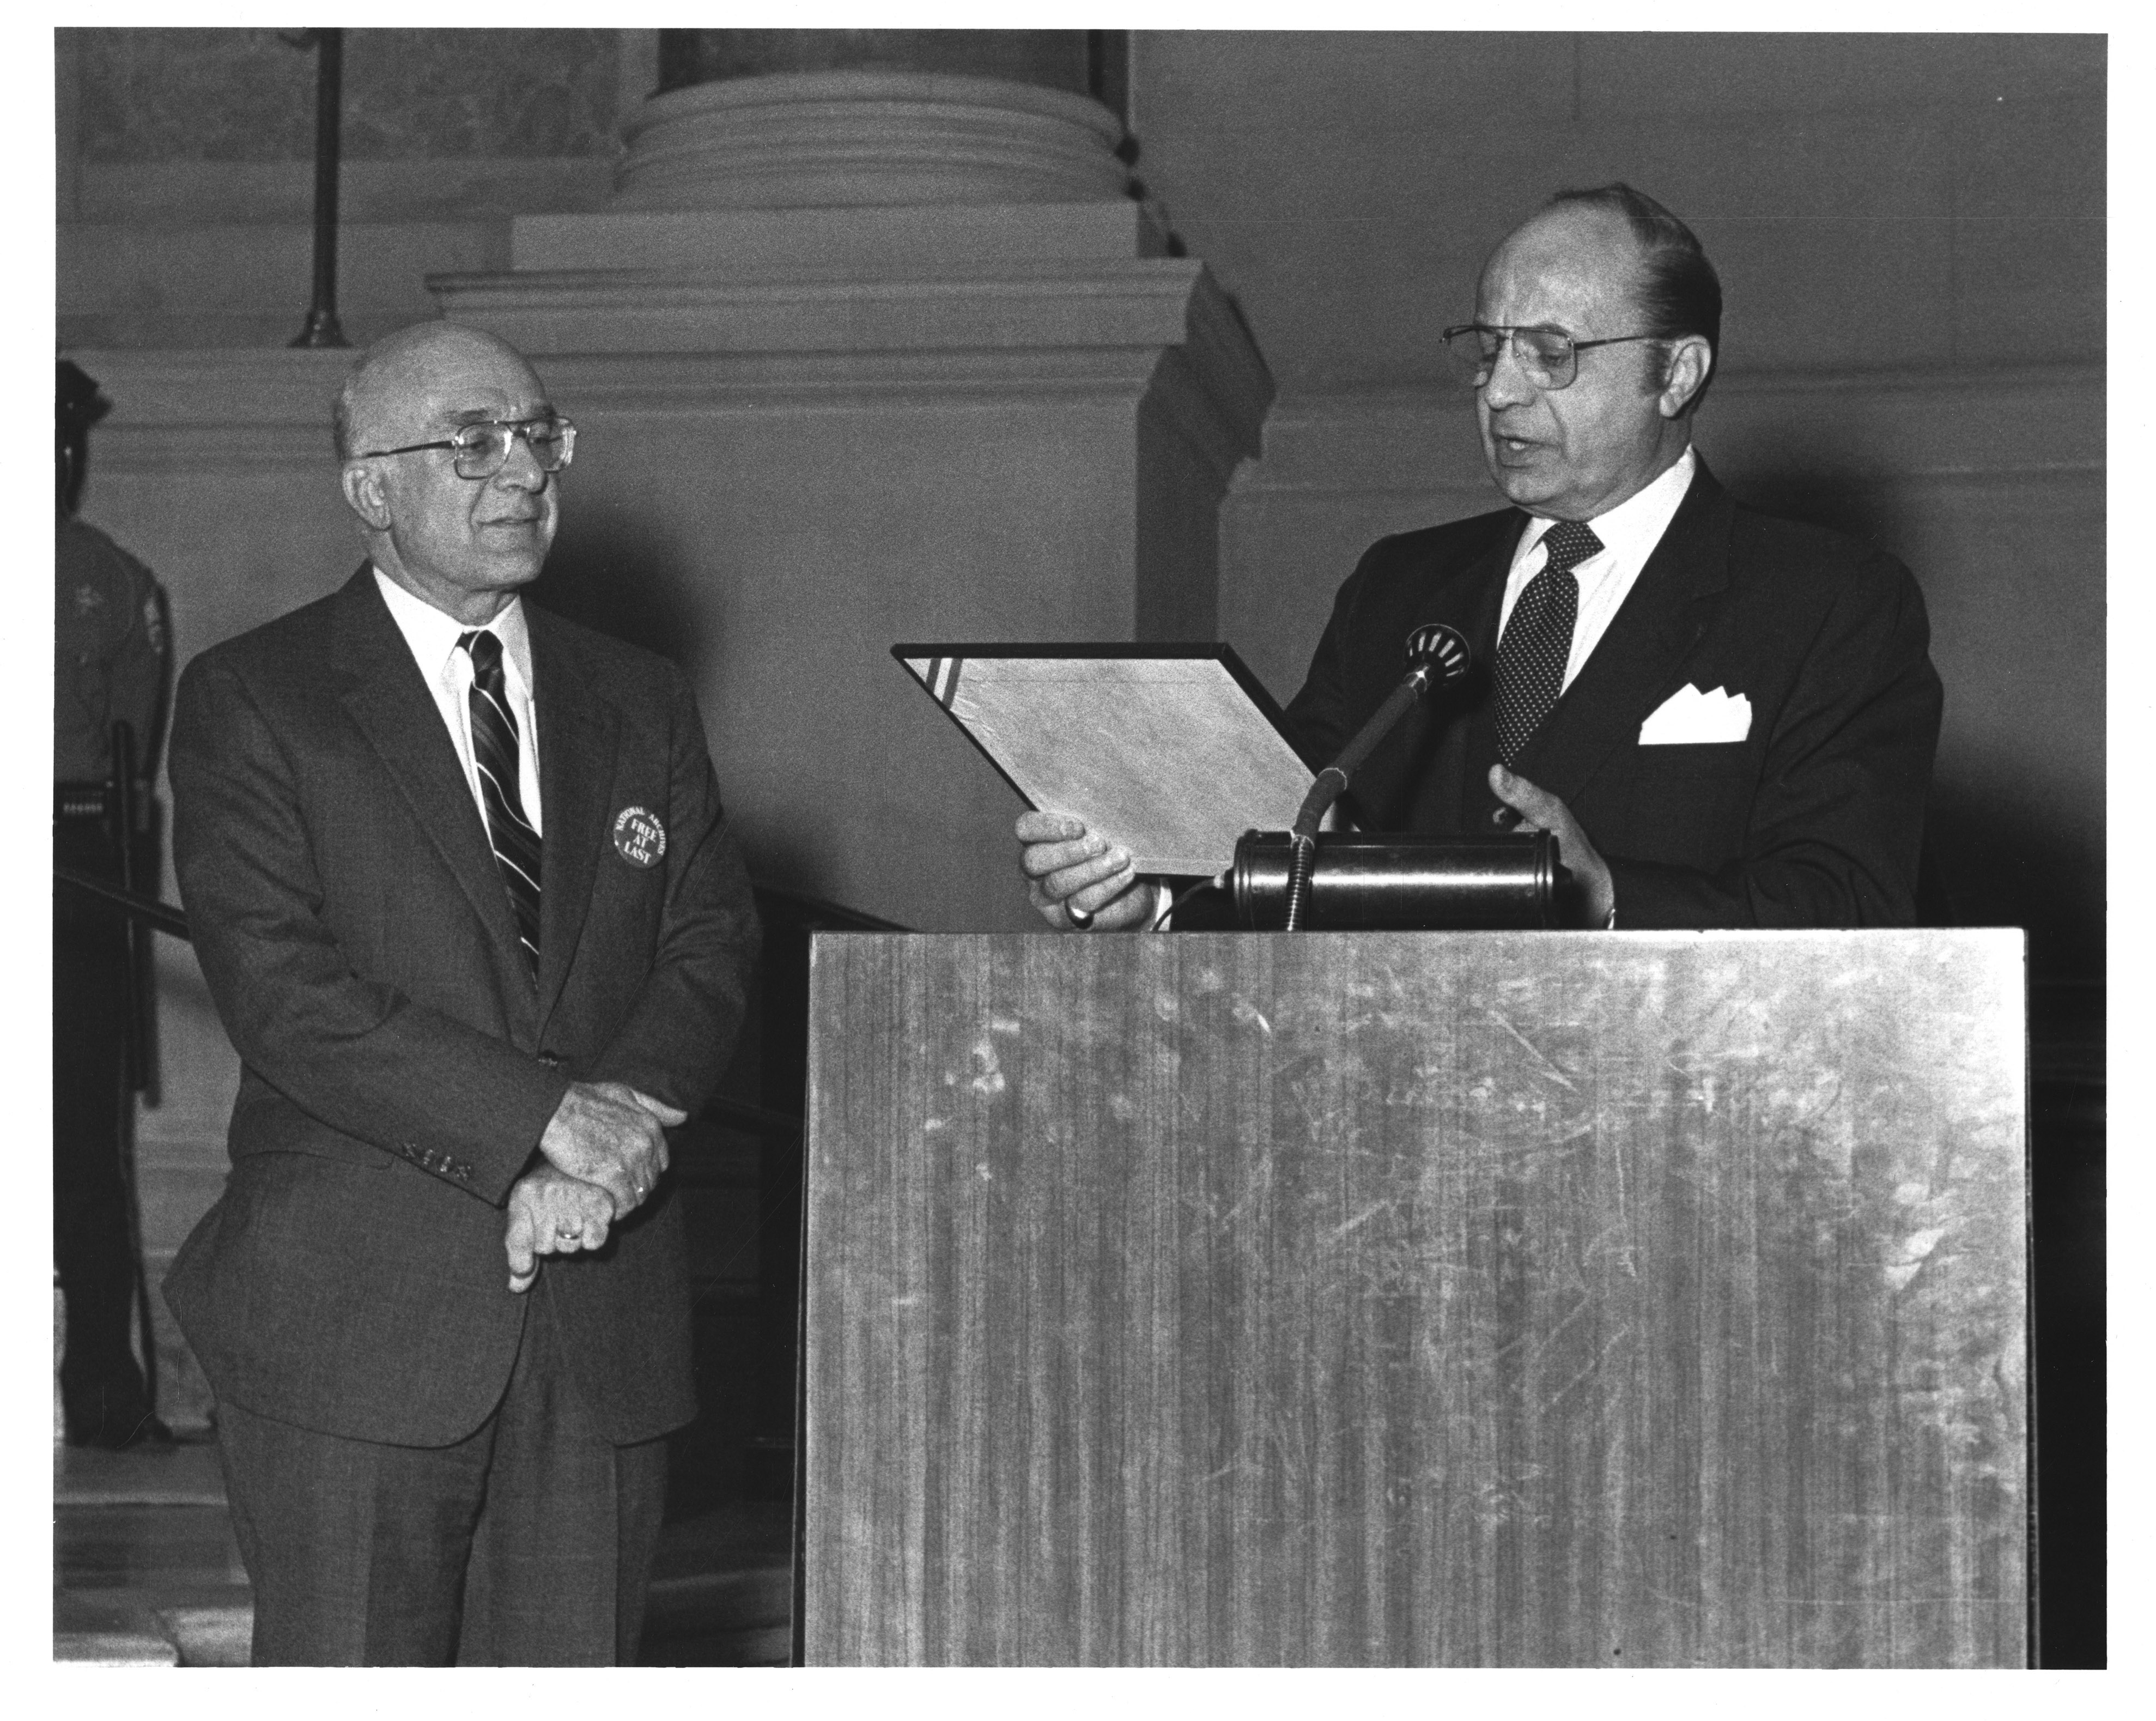 National Archives Independence- NARA ndependence Act Ceremony 4_11-8-84